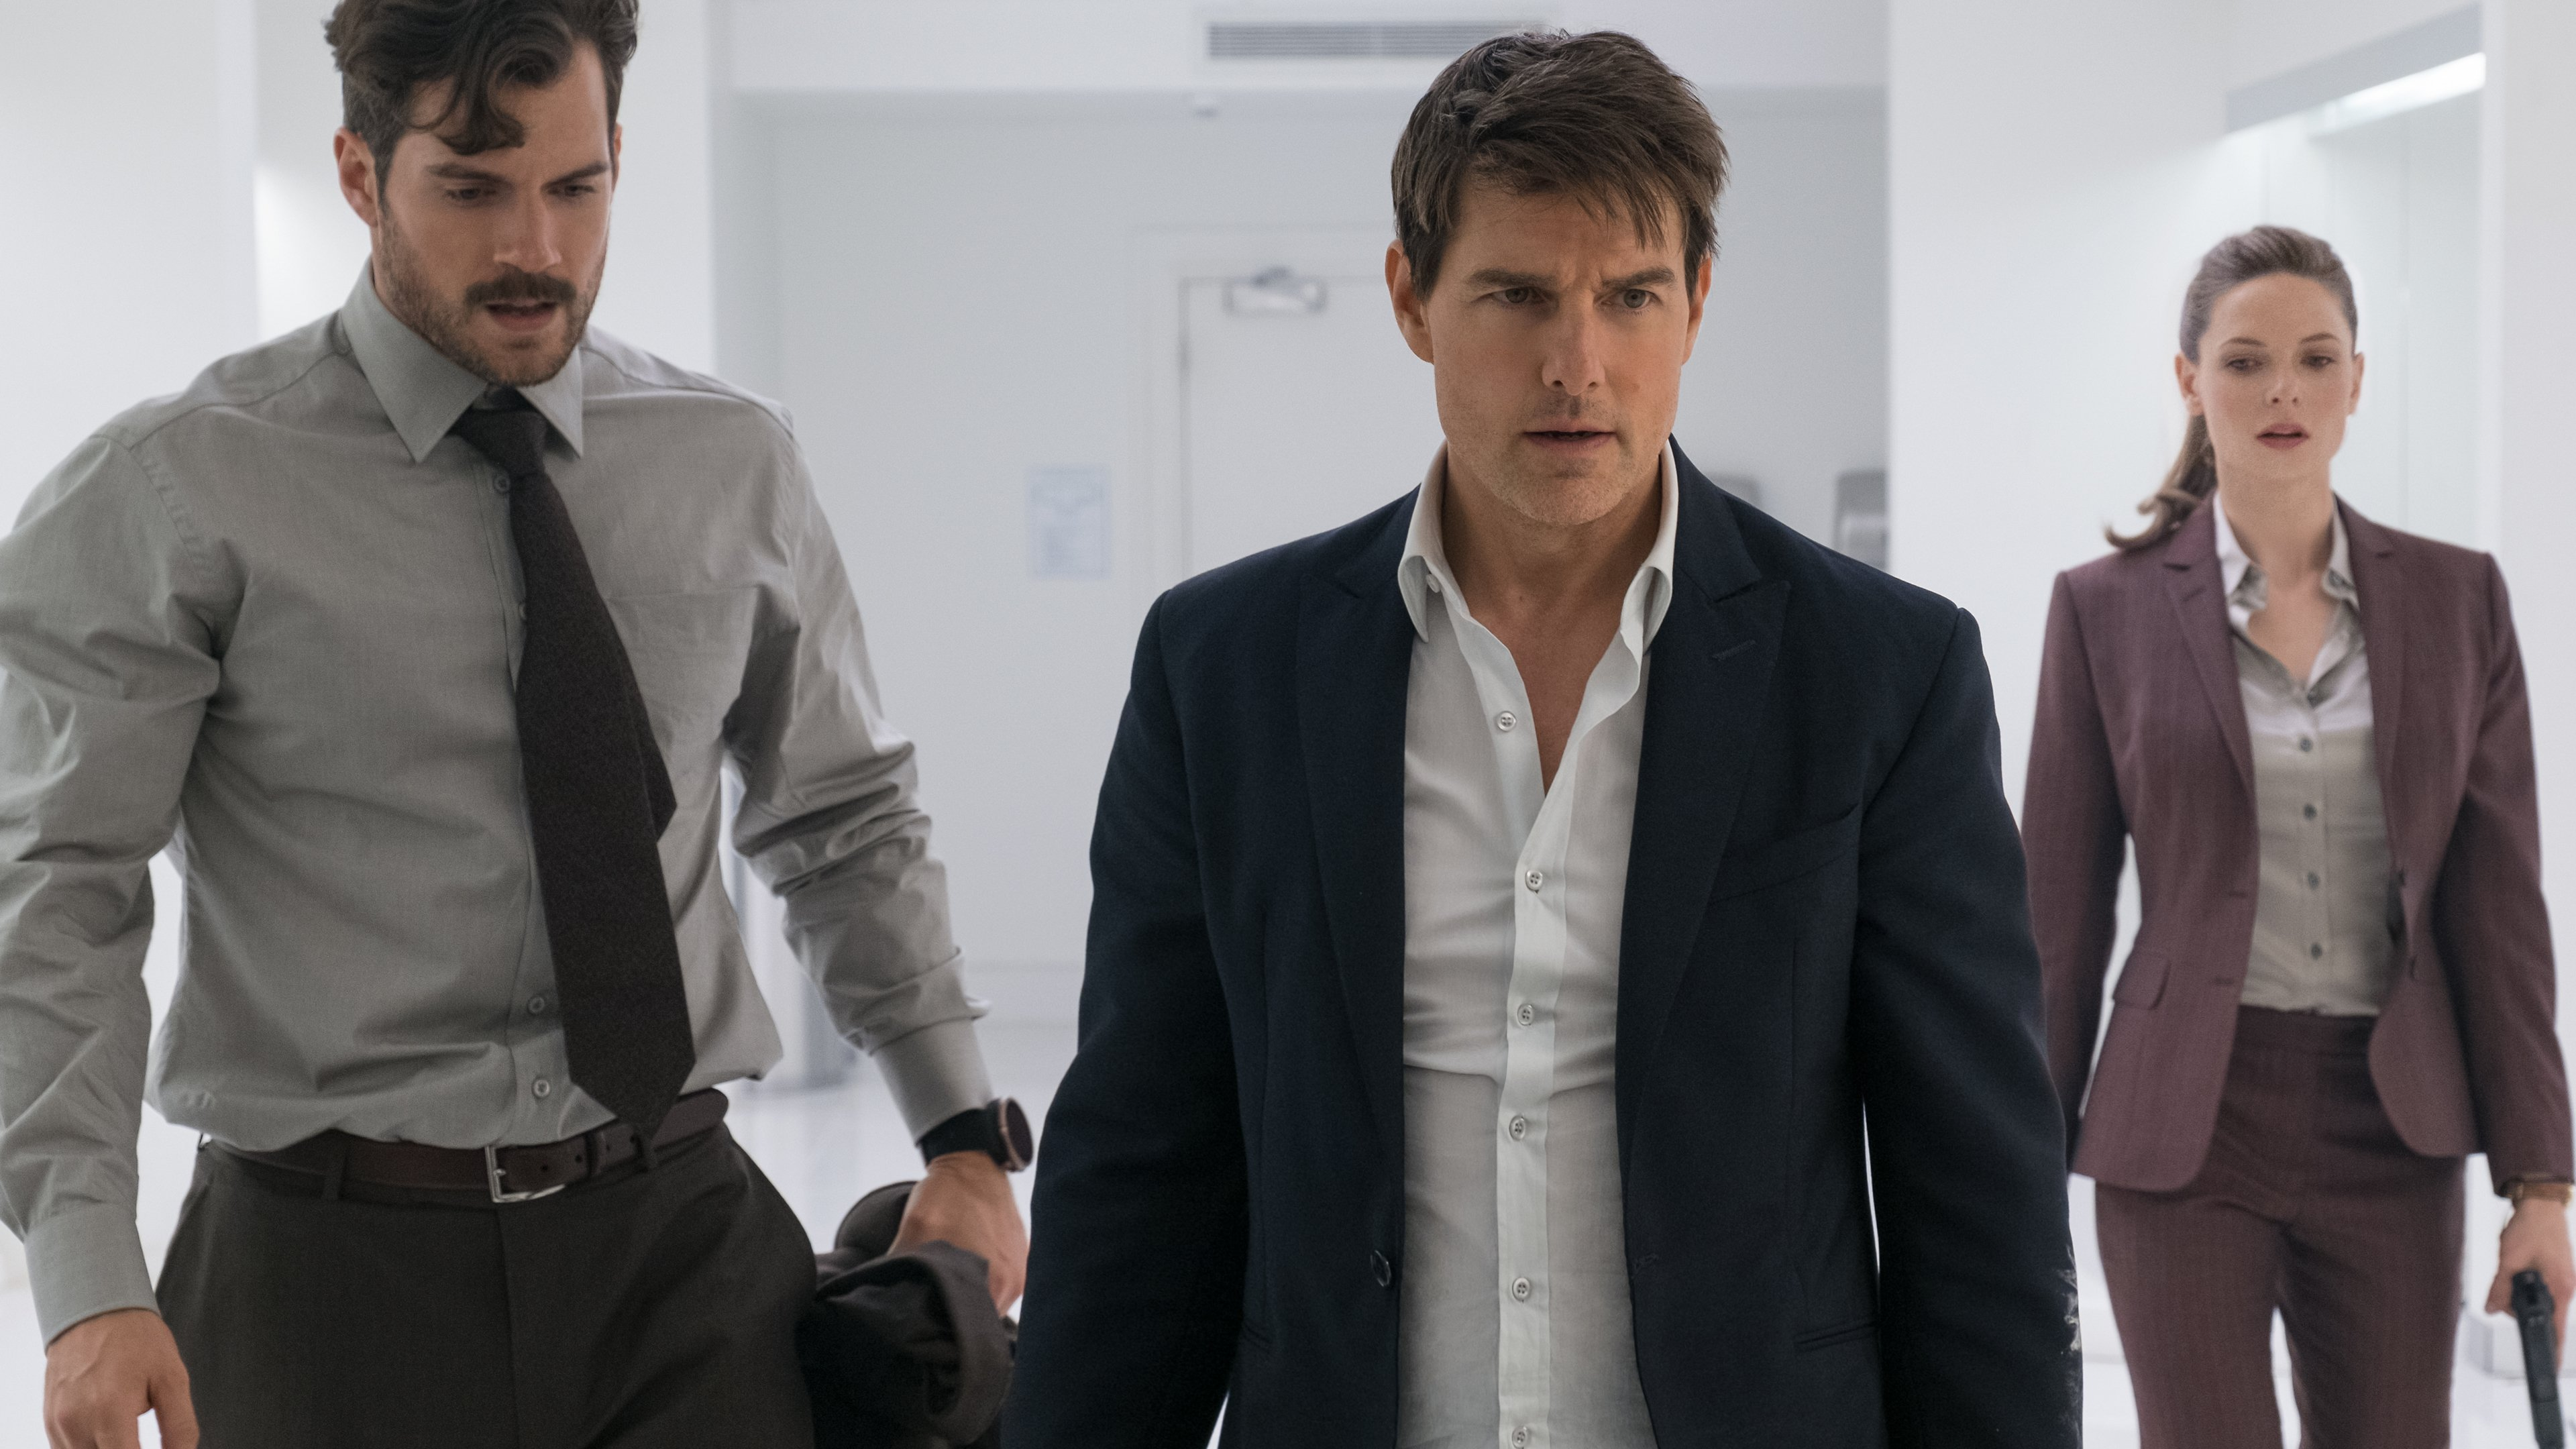 Wallpaper 4k Mission Impossible Fallout Tom Cruise Rebecca Ferguson Henry Cavill 2018 Movies Wallpapers 4k Wallpapers 5k Wallpapers Hd Wallpapers Henry Cavill Wallpapers Mission Impossible 6 Wallpapers Mission Impossible Fallout Wallpapers